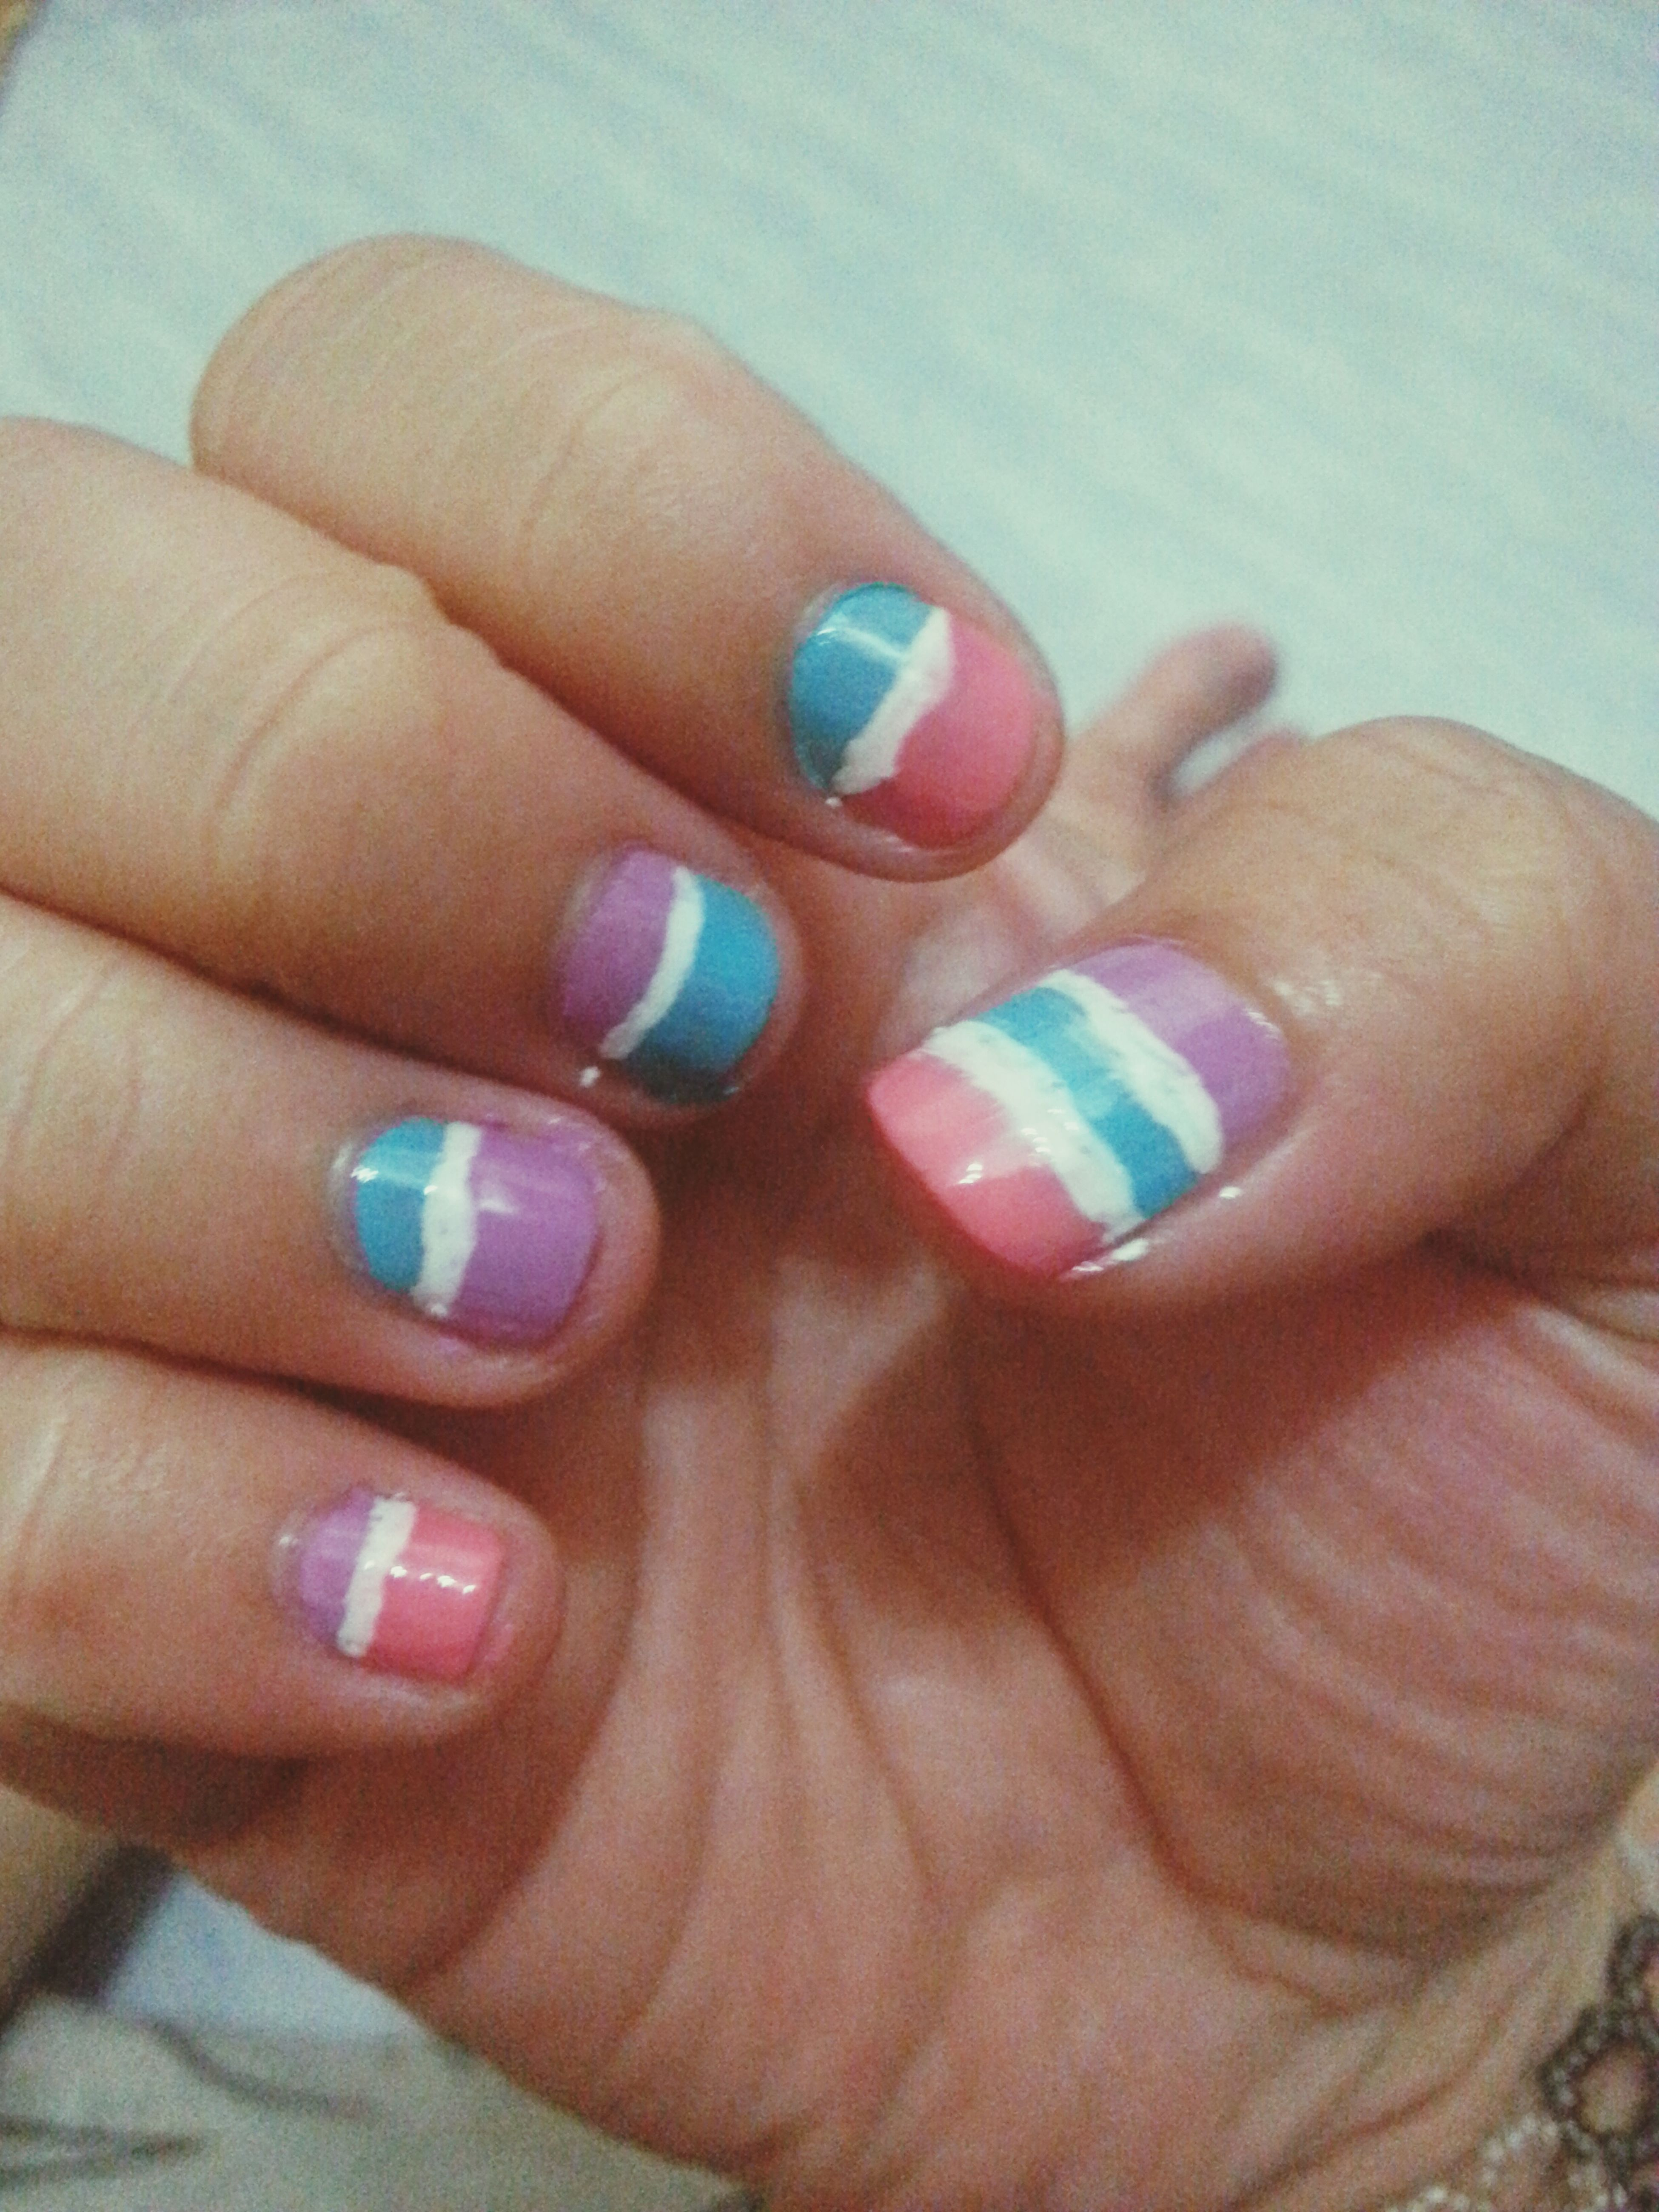 Nails Done by cousin. Thanks cousin.